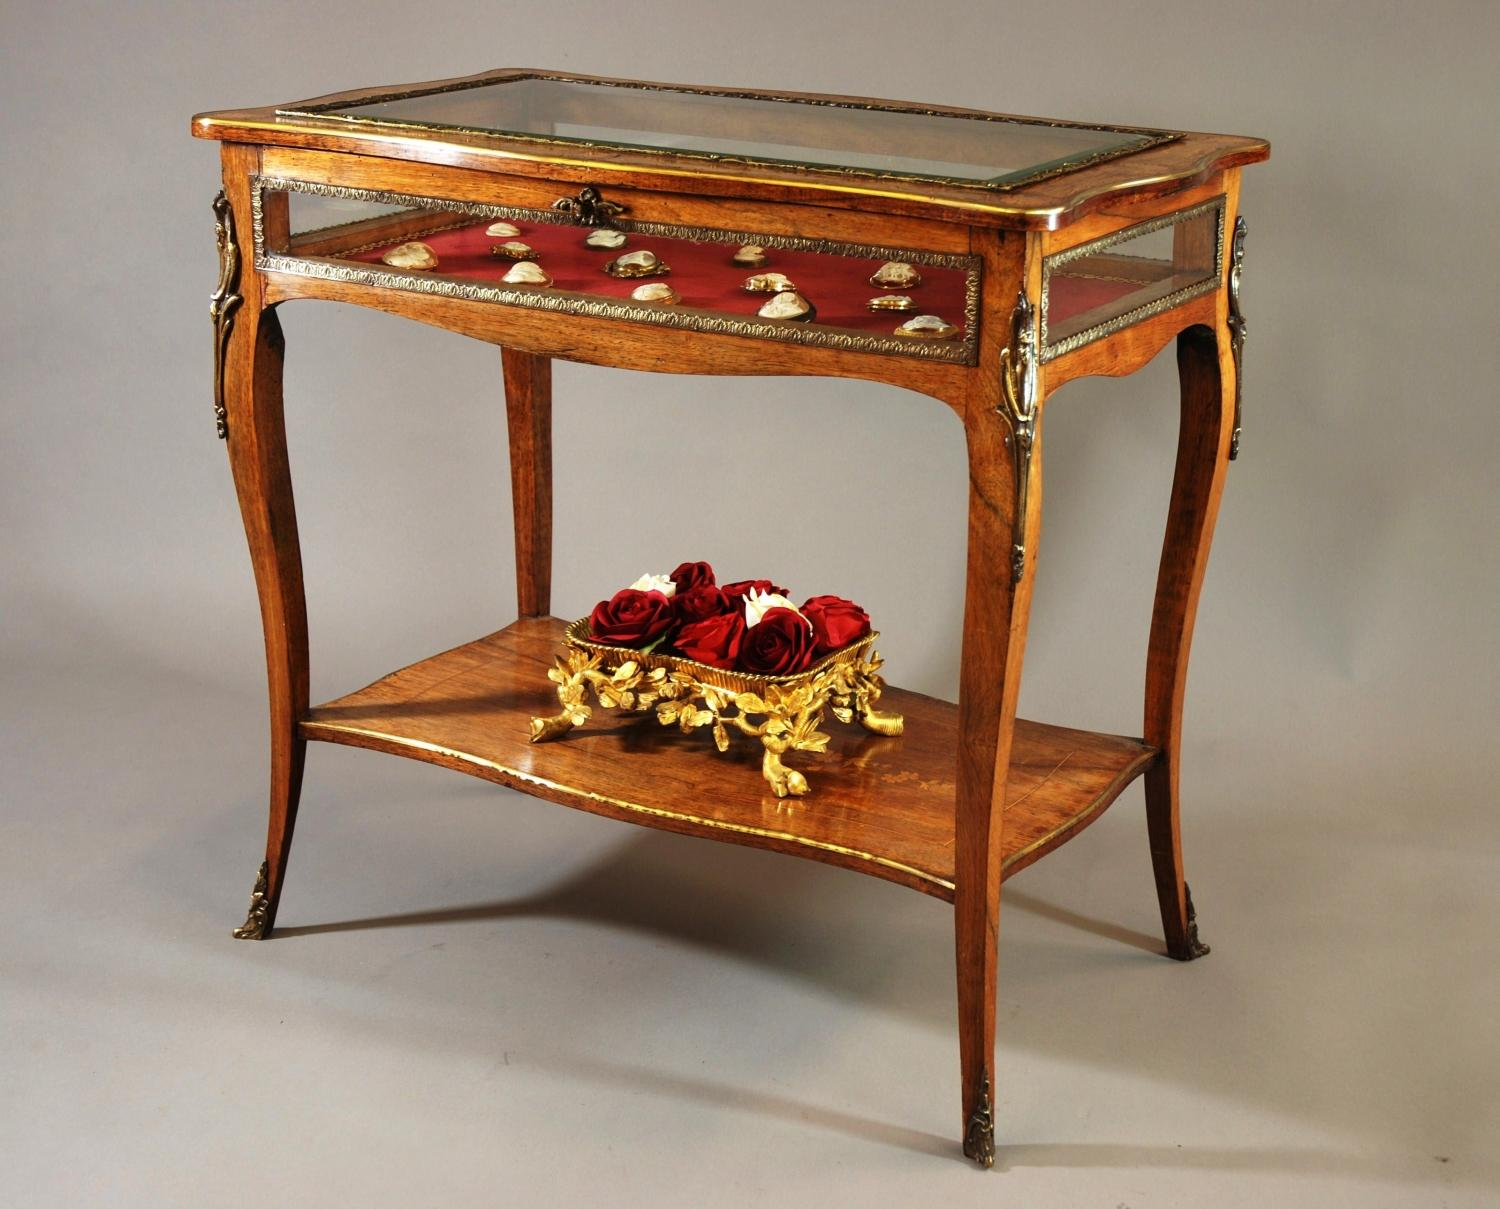 Late 19thc English bijouterie table